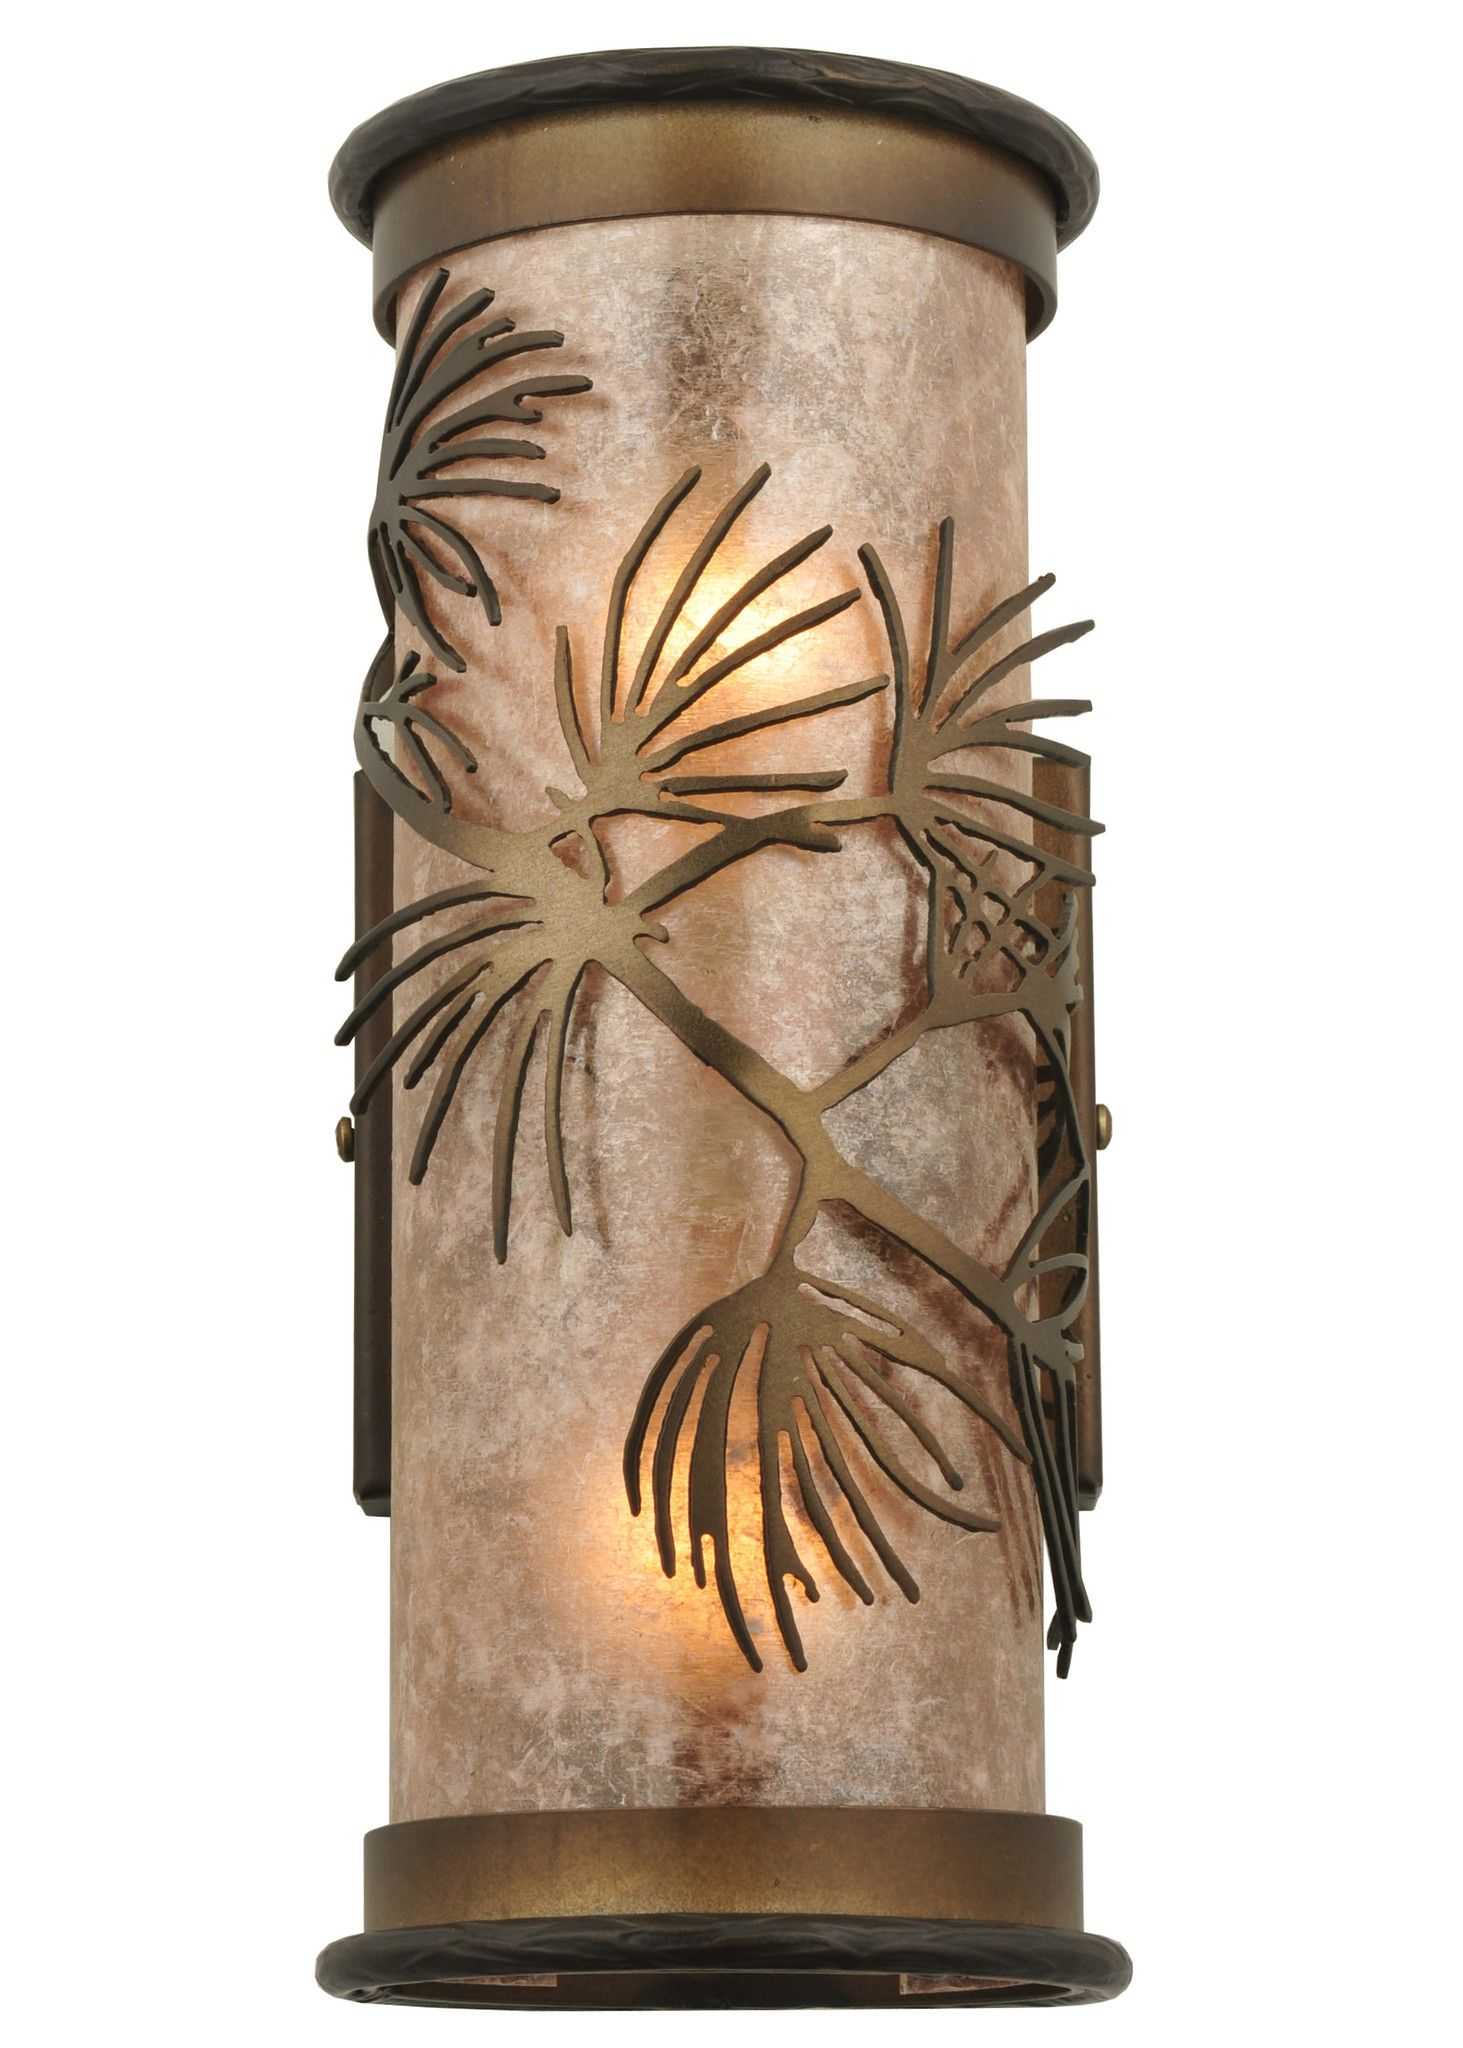 Lighthouse wall sconce meyda tiffany lighting ideas pinterest lighthouse wall sconce meyda tiffany lighting ideas pinterest wall sconces lighthouse and tiffany amipublicfo Image collections